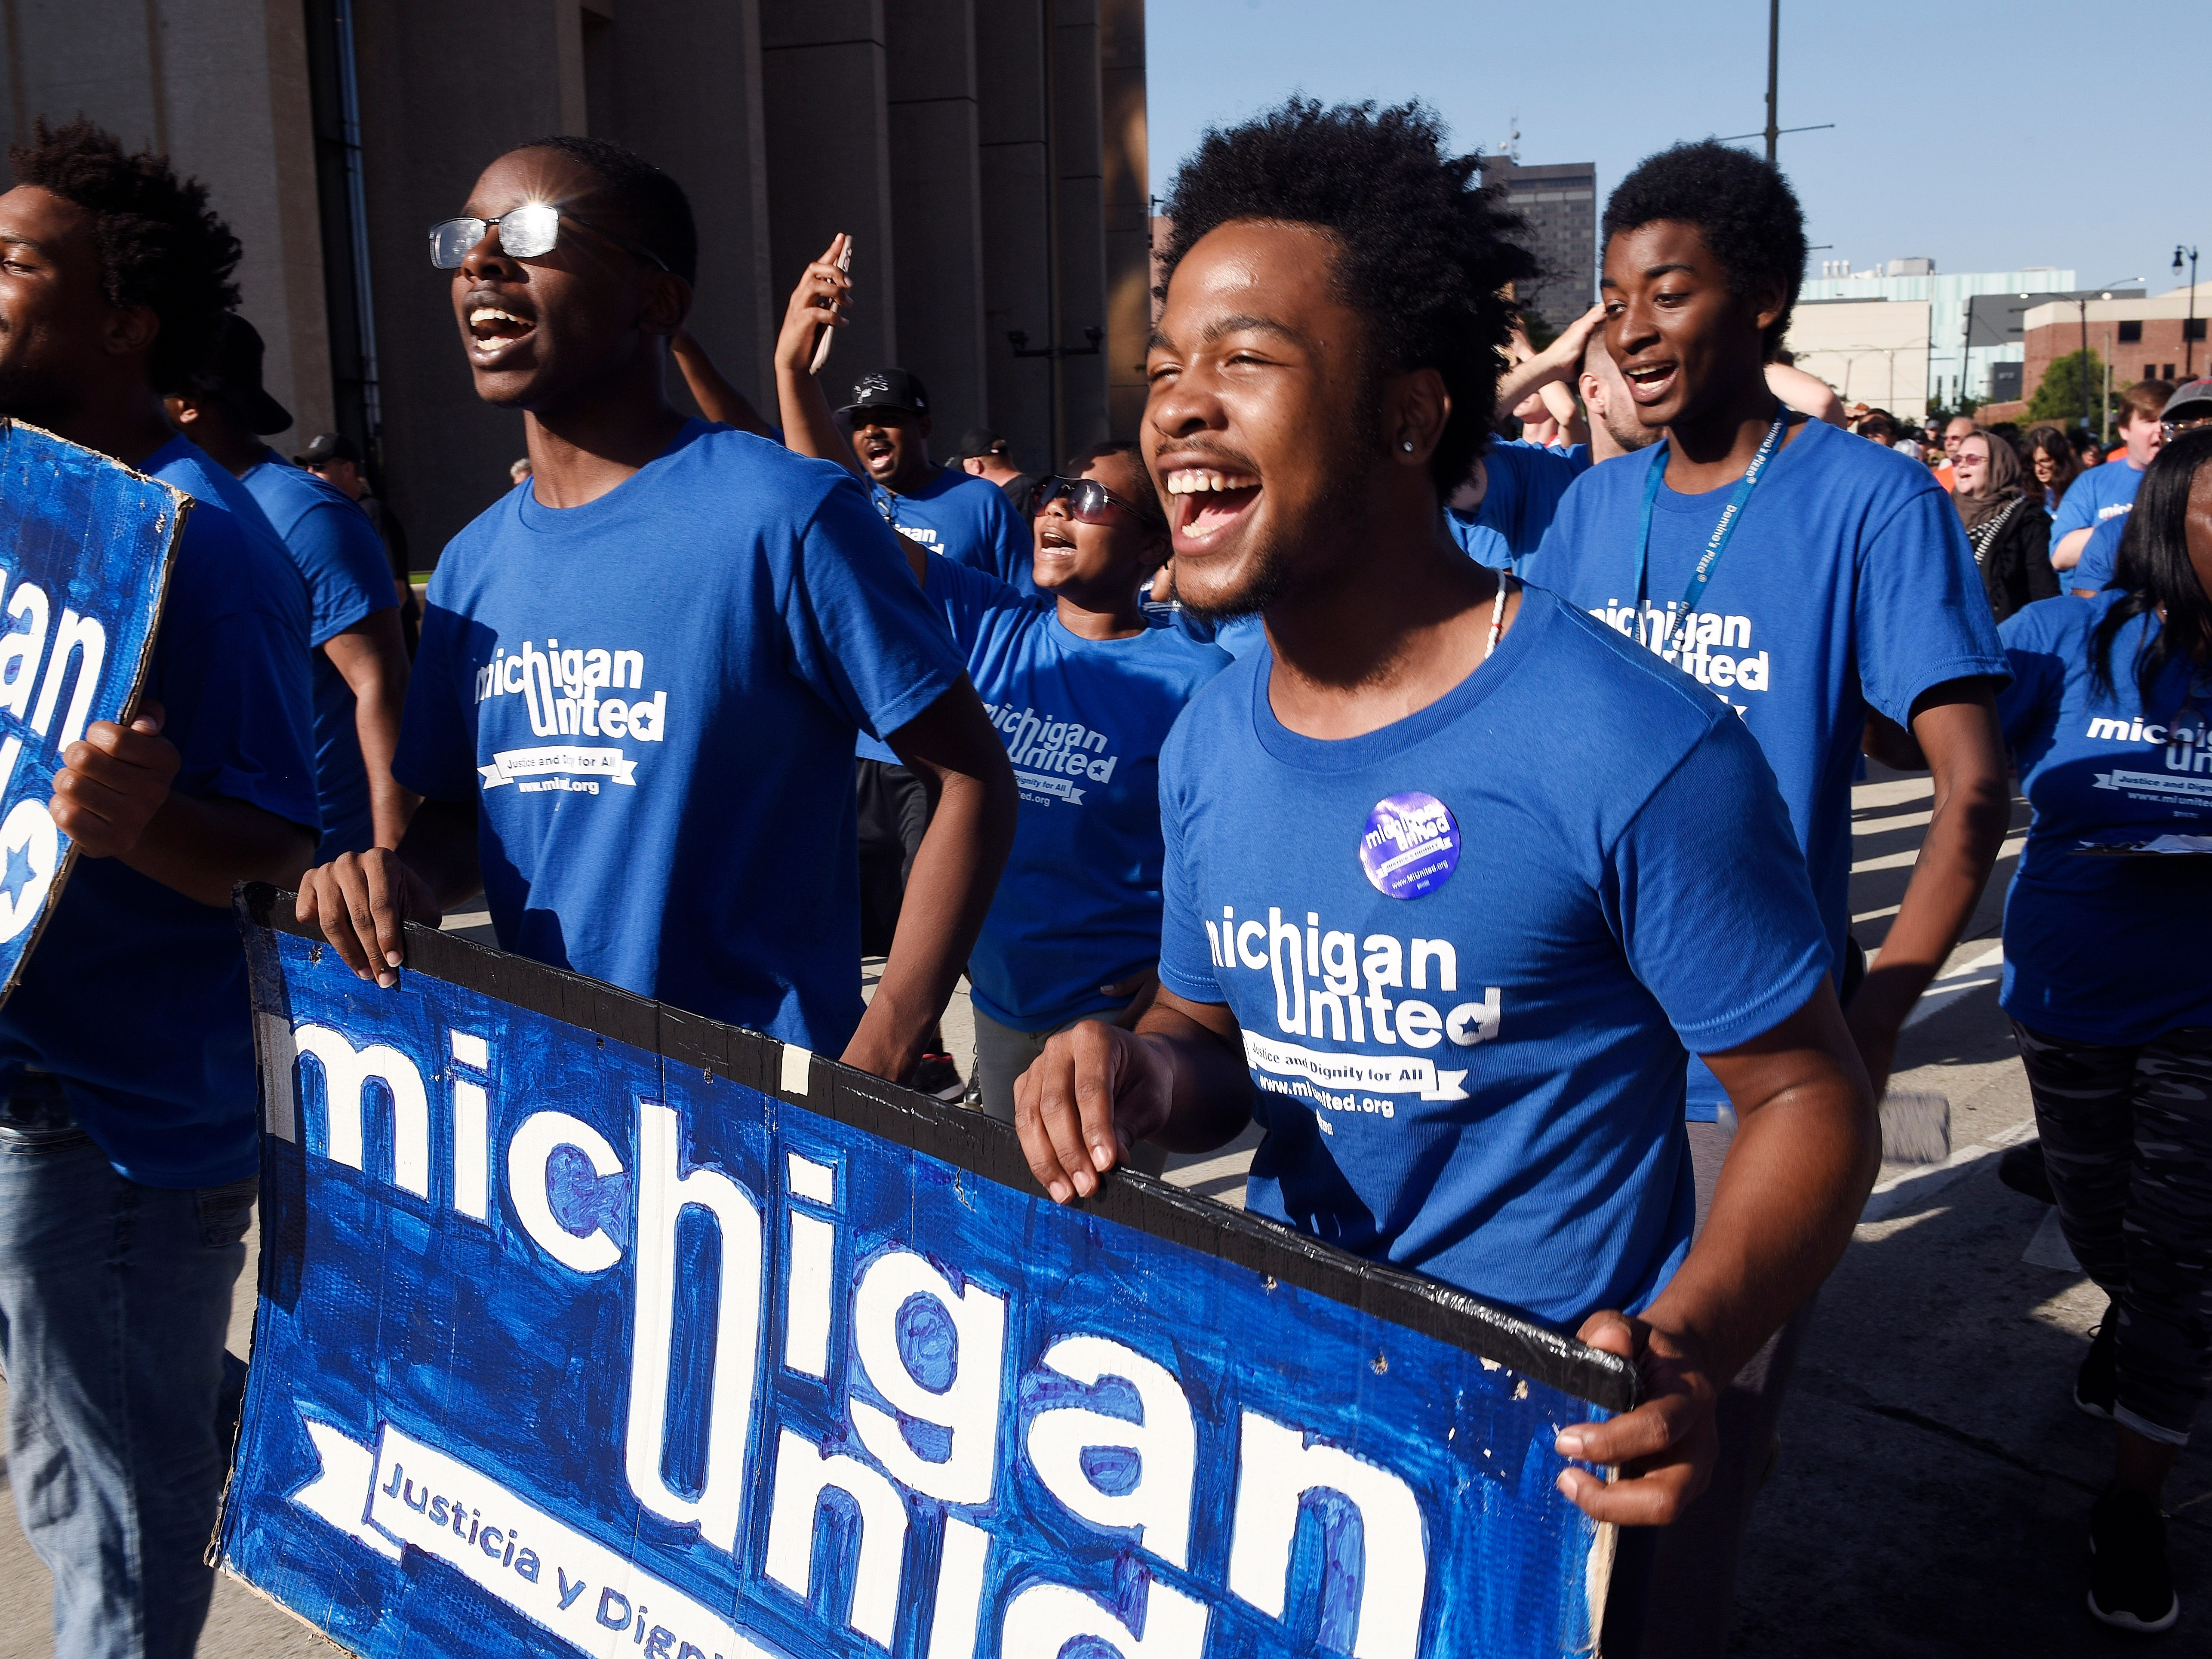 Dwight Bailey, 18, center, and Aaron Cooper, 19, right, of Michigan United walk the parade route along Michigan Ave. to Hart Plaza.